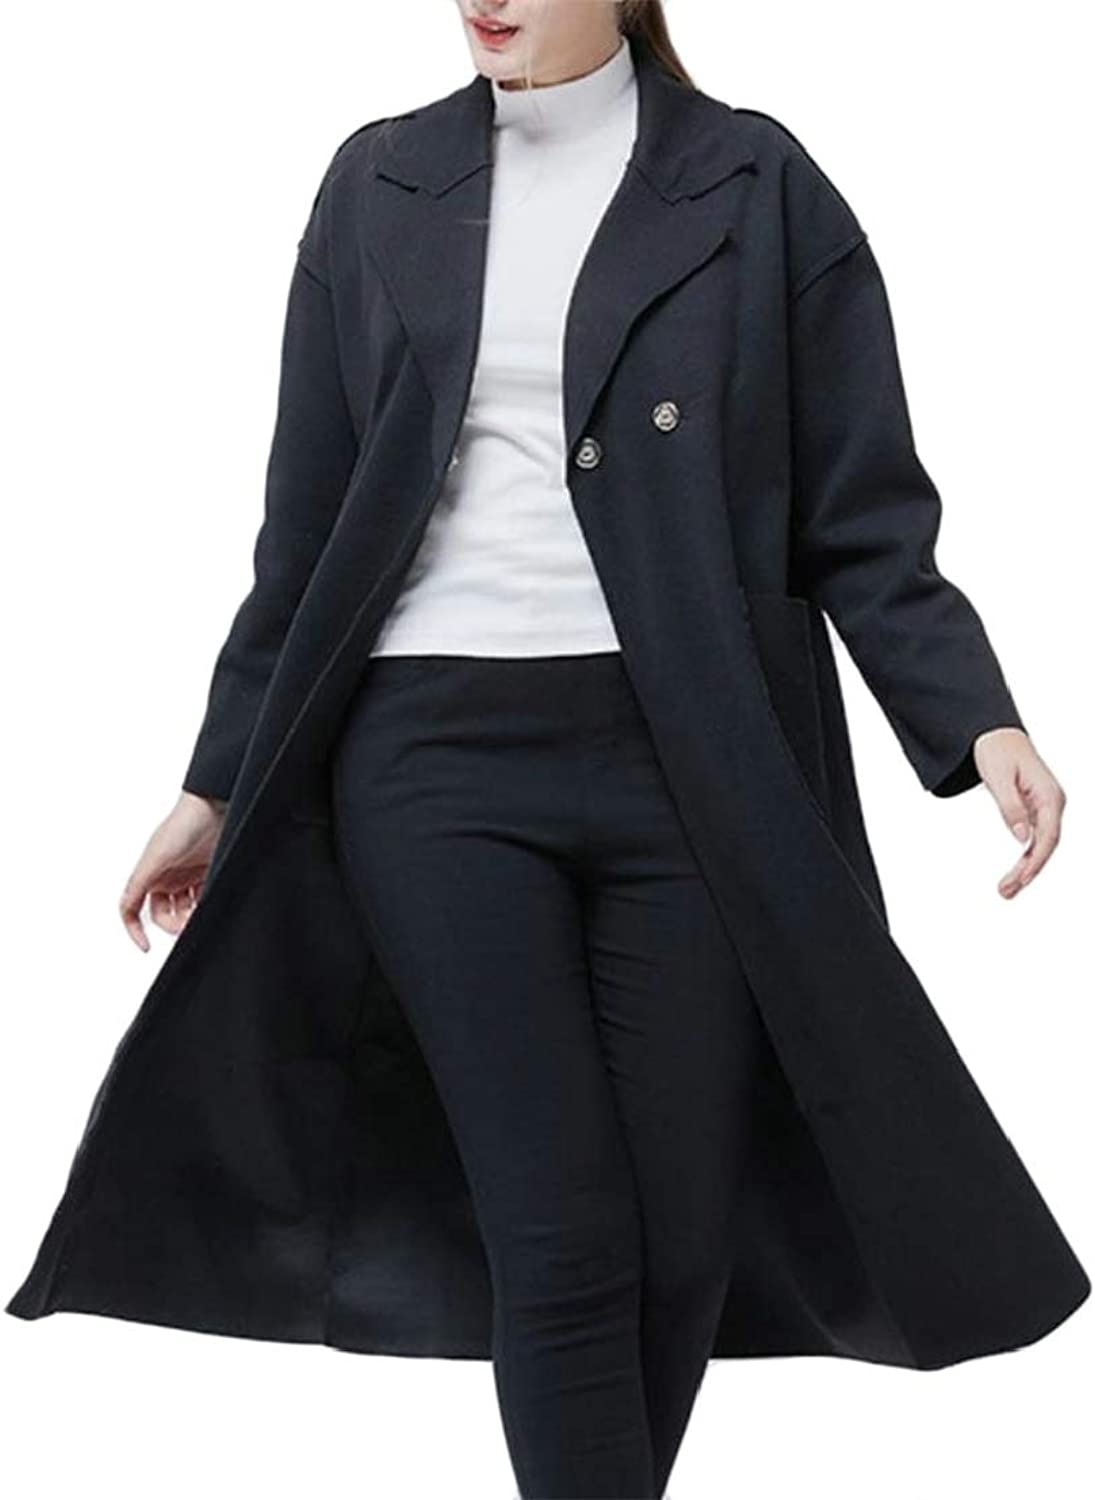 Wofupowga Women MidLength Lapel Belted Autumn Winter Thermal Trench Coat Woolen Outerwear